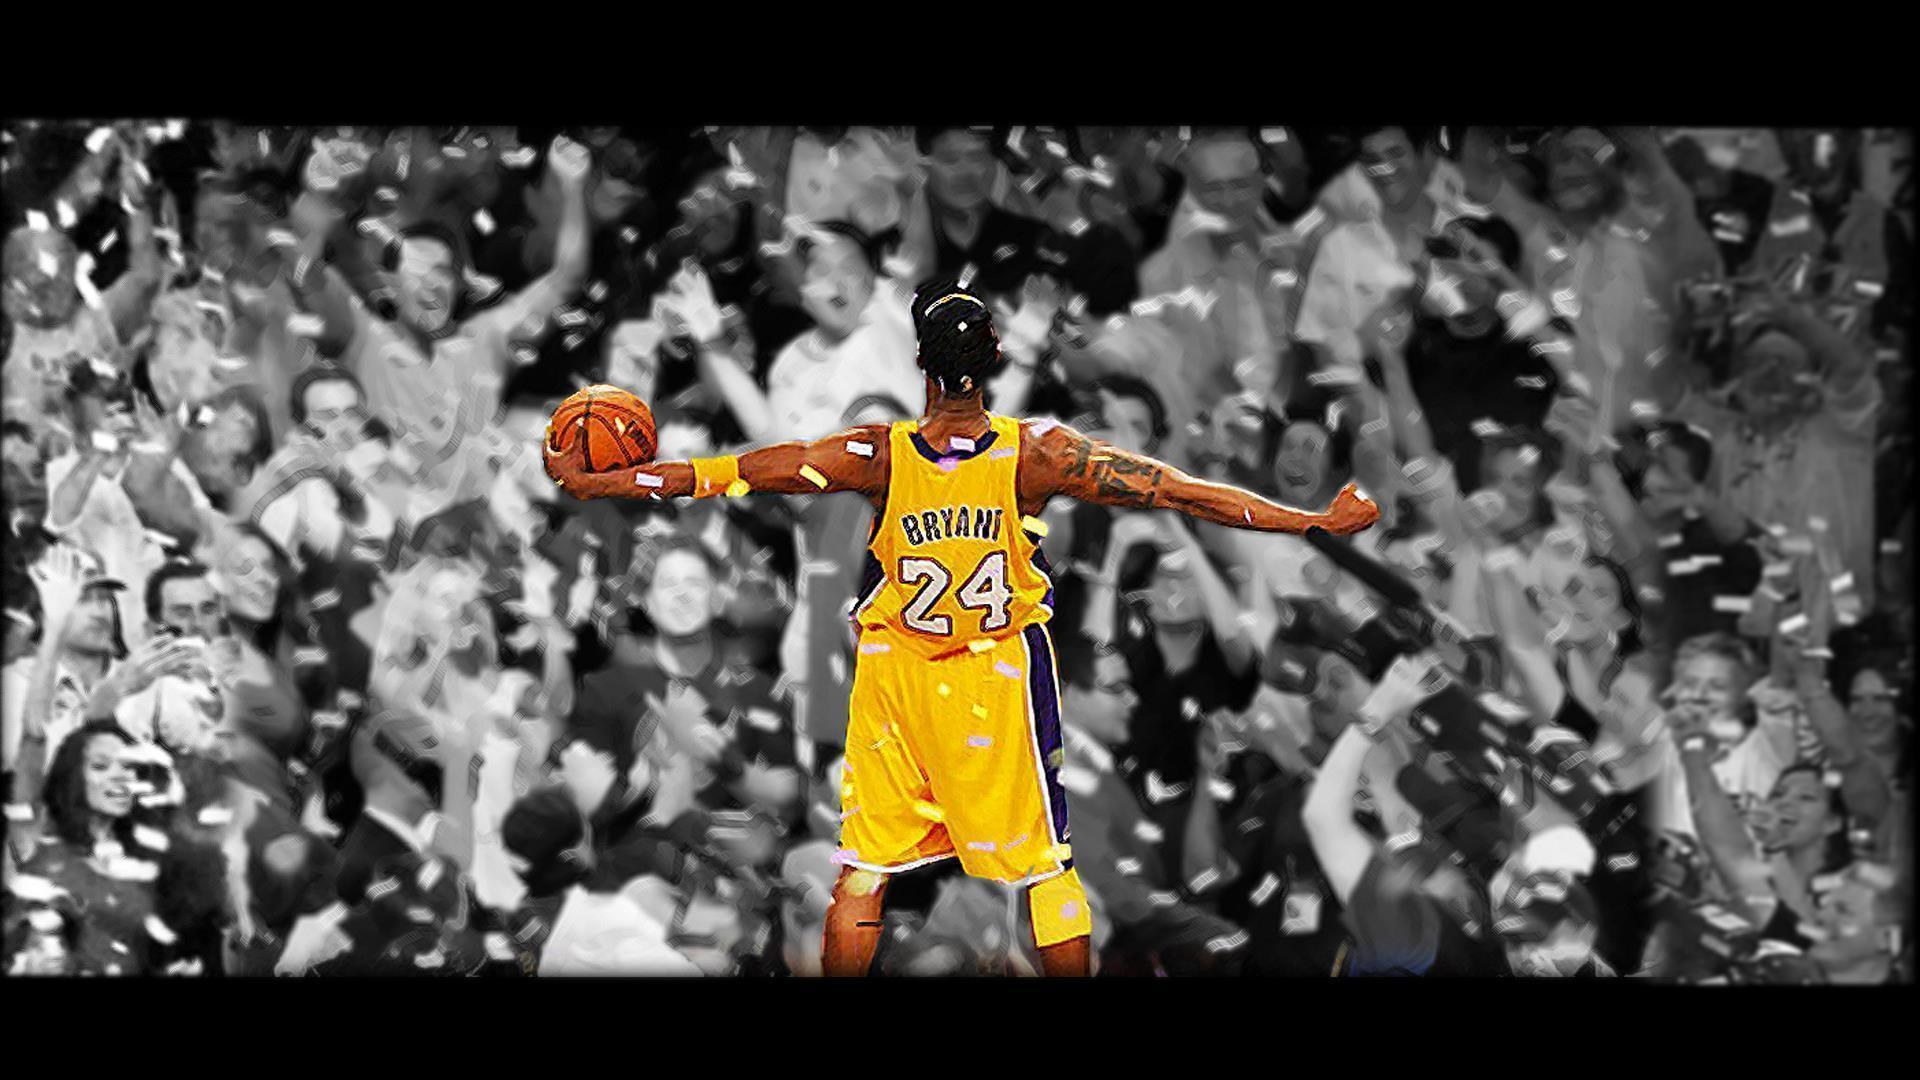 kobe bryant wallpaper 2016 - photo #2